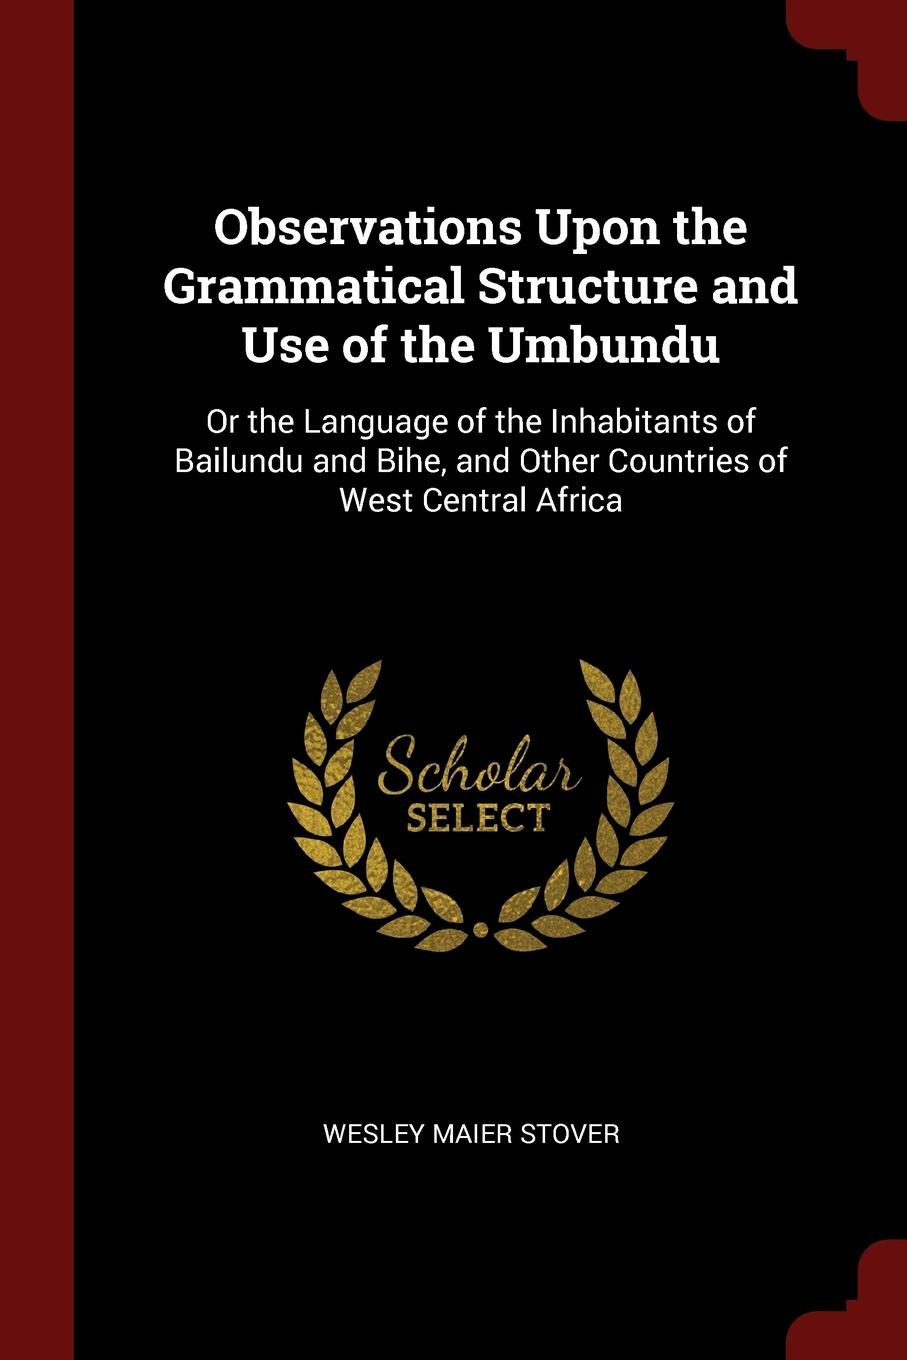 Observations Upon the Grammatical Structure and Use of the Umbundu. Or the Language of the Inhabitants of Bailundu and Bihe, and Other Countries of West Central Africa. Wesley Maier Stover